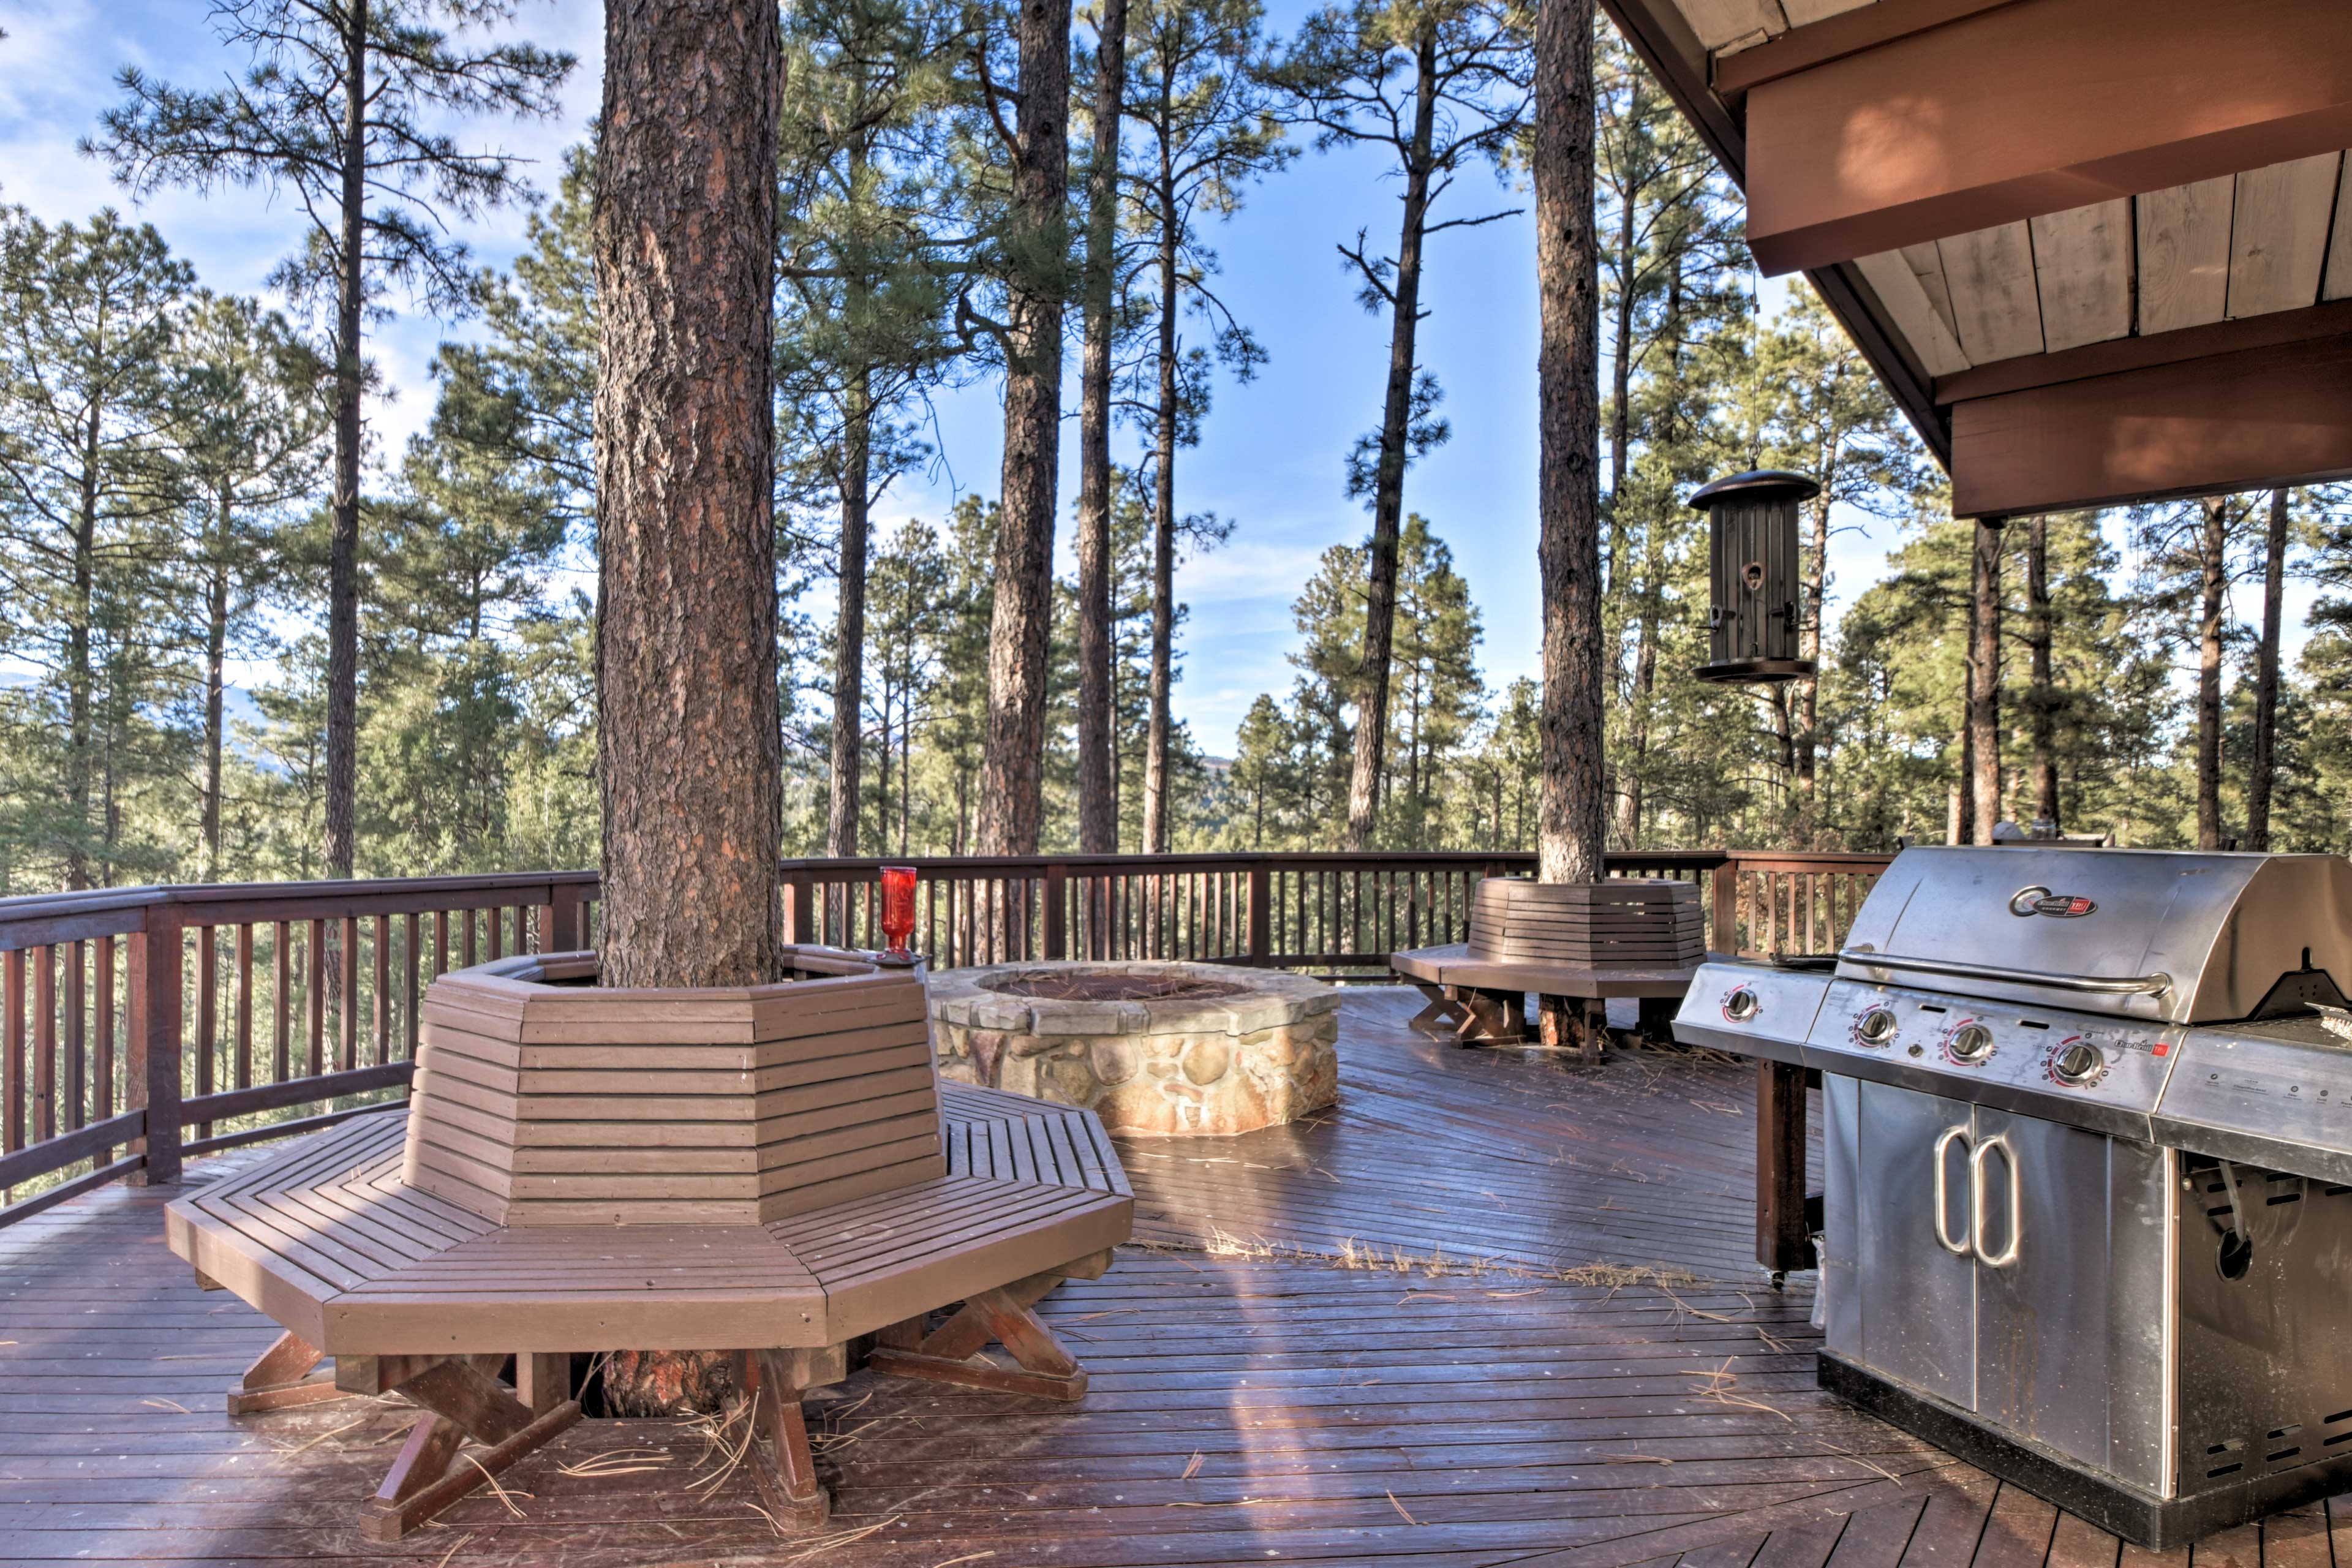 The deck features a gas grill and plenty of seating overlooking the mountains.